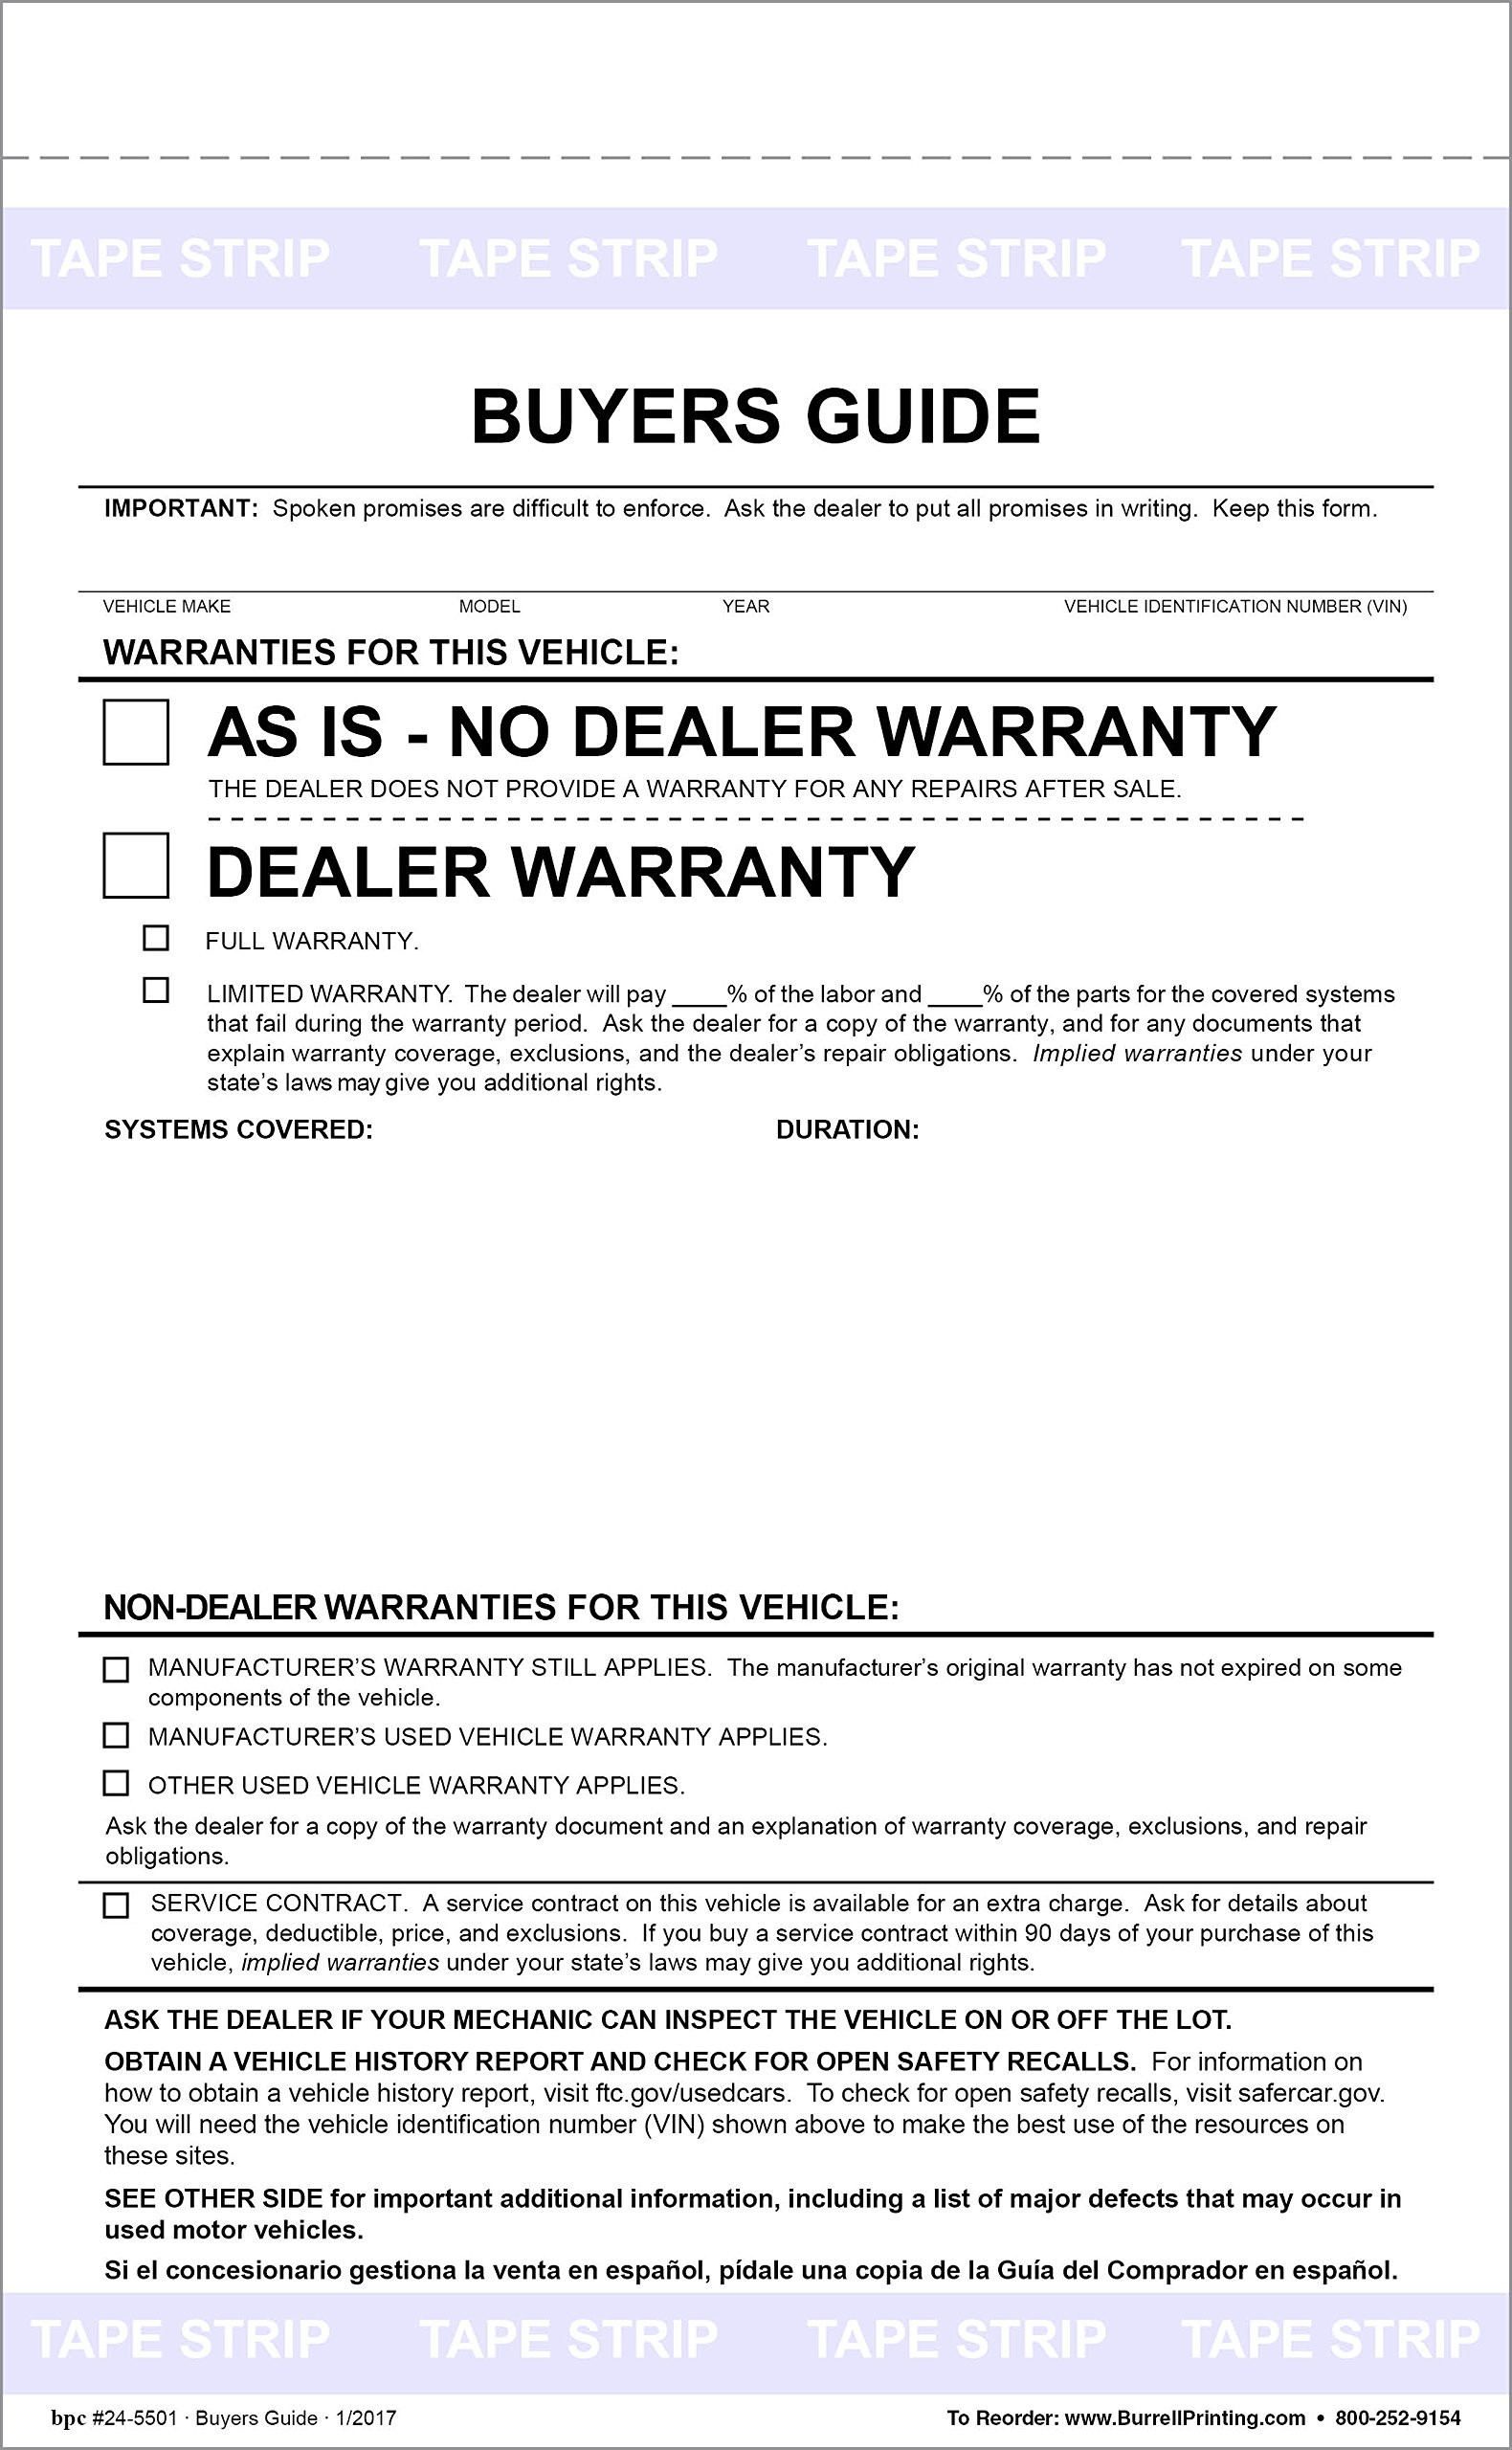 Buyers Guide Form - Adhesive Tape - English - As is - Warranty Pack of 500 Forms